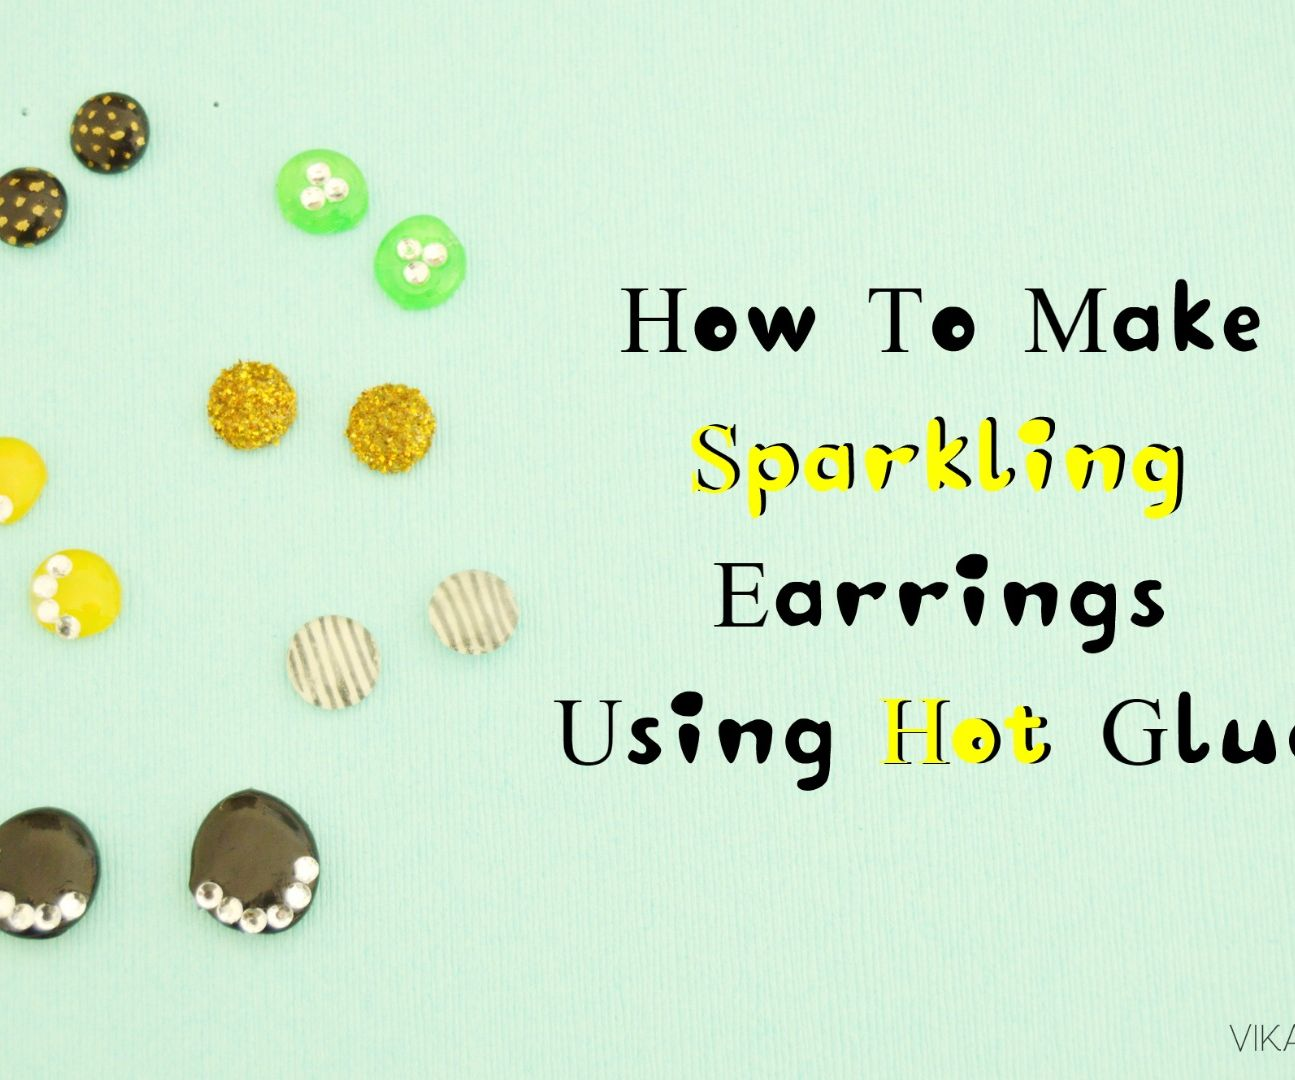 How to Make Sparkling Earrings using Hot glue